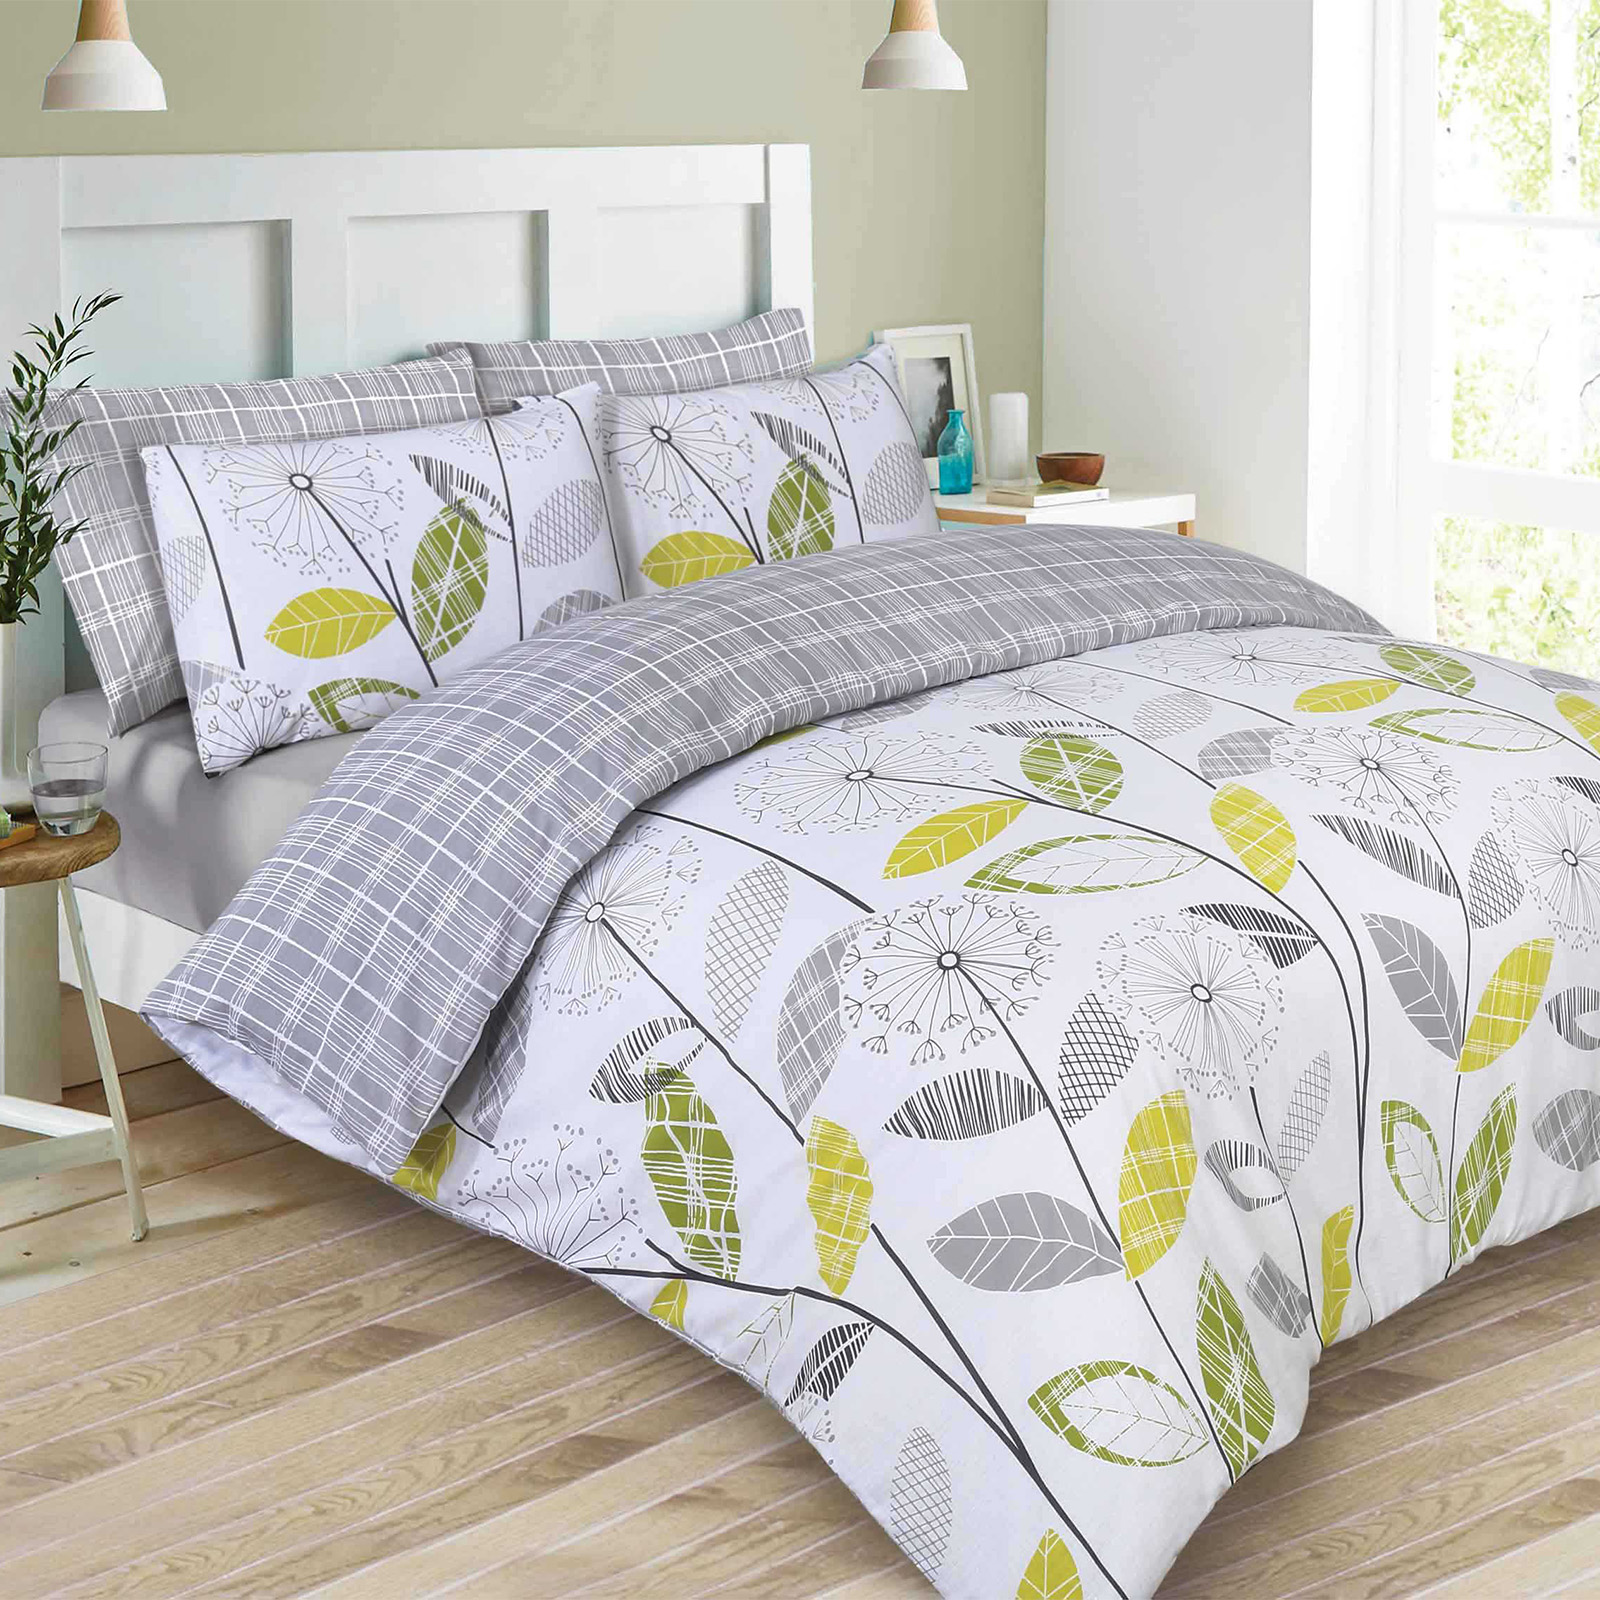 Duvet Covers. Luxury bed linen is a must if you want to transform your home into a peaceful haven. Investing in high-quality bedding and bed linen aides sleep by making your sleeping space as comfortable as possible.